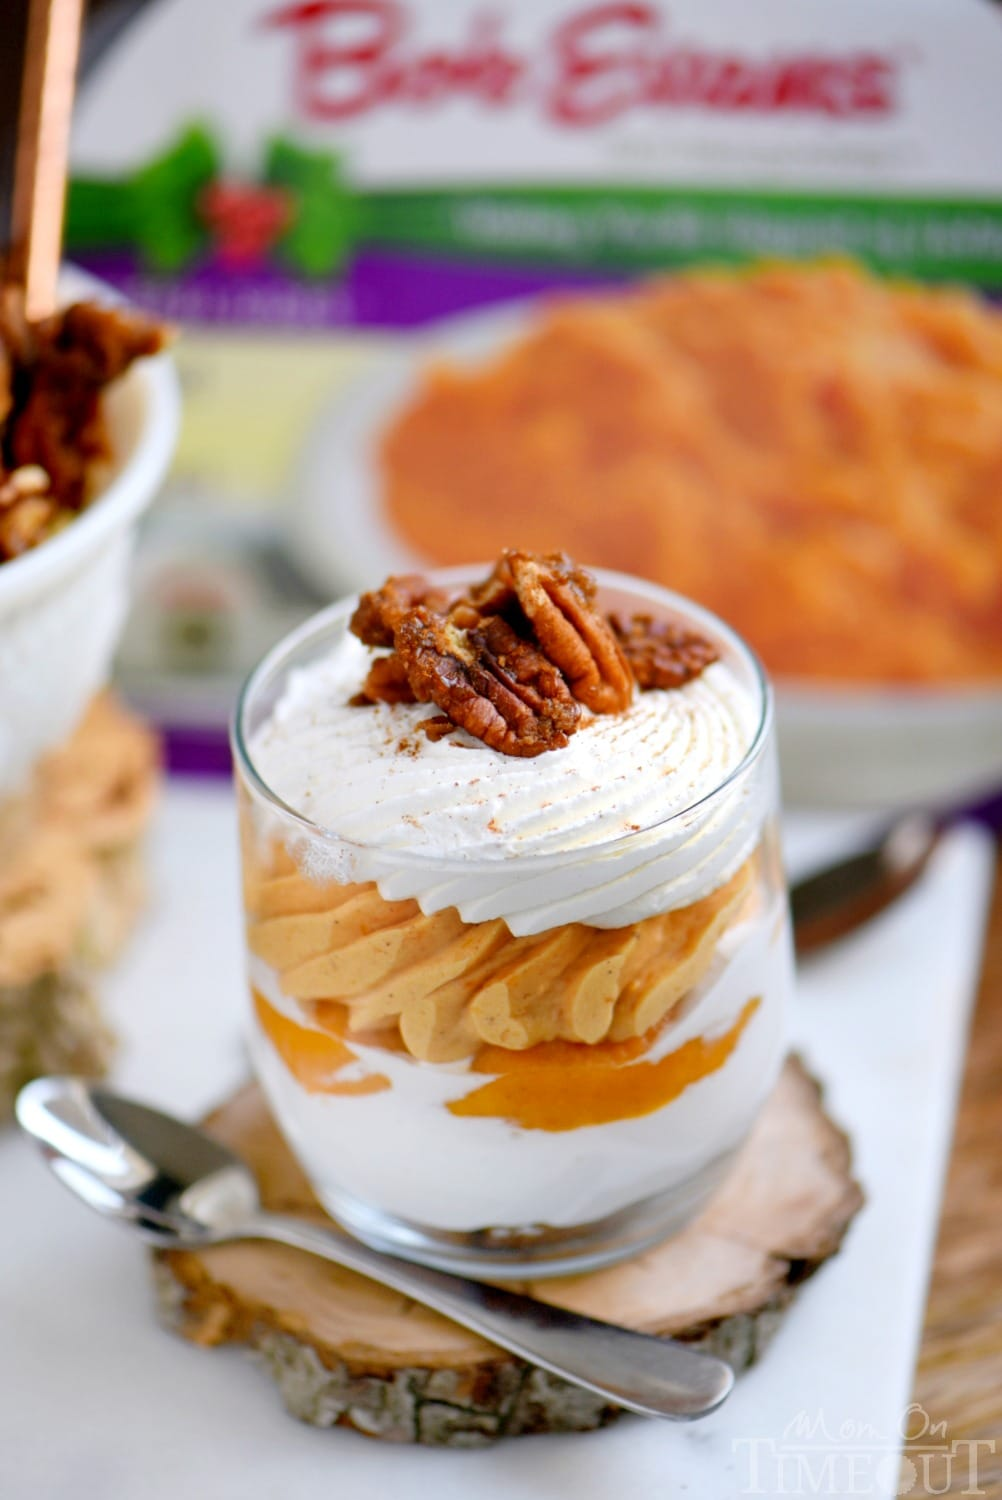 The best dessert I've had all year - Sweet Potato Cheesecake Parfaits! Layers of gingersnap cookies, marshmallow, sweet potato cheesecake and whipped cream all topped with candied pecans and a dash of cinnamon! Delight in every bite! // Mom On Timeout